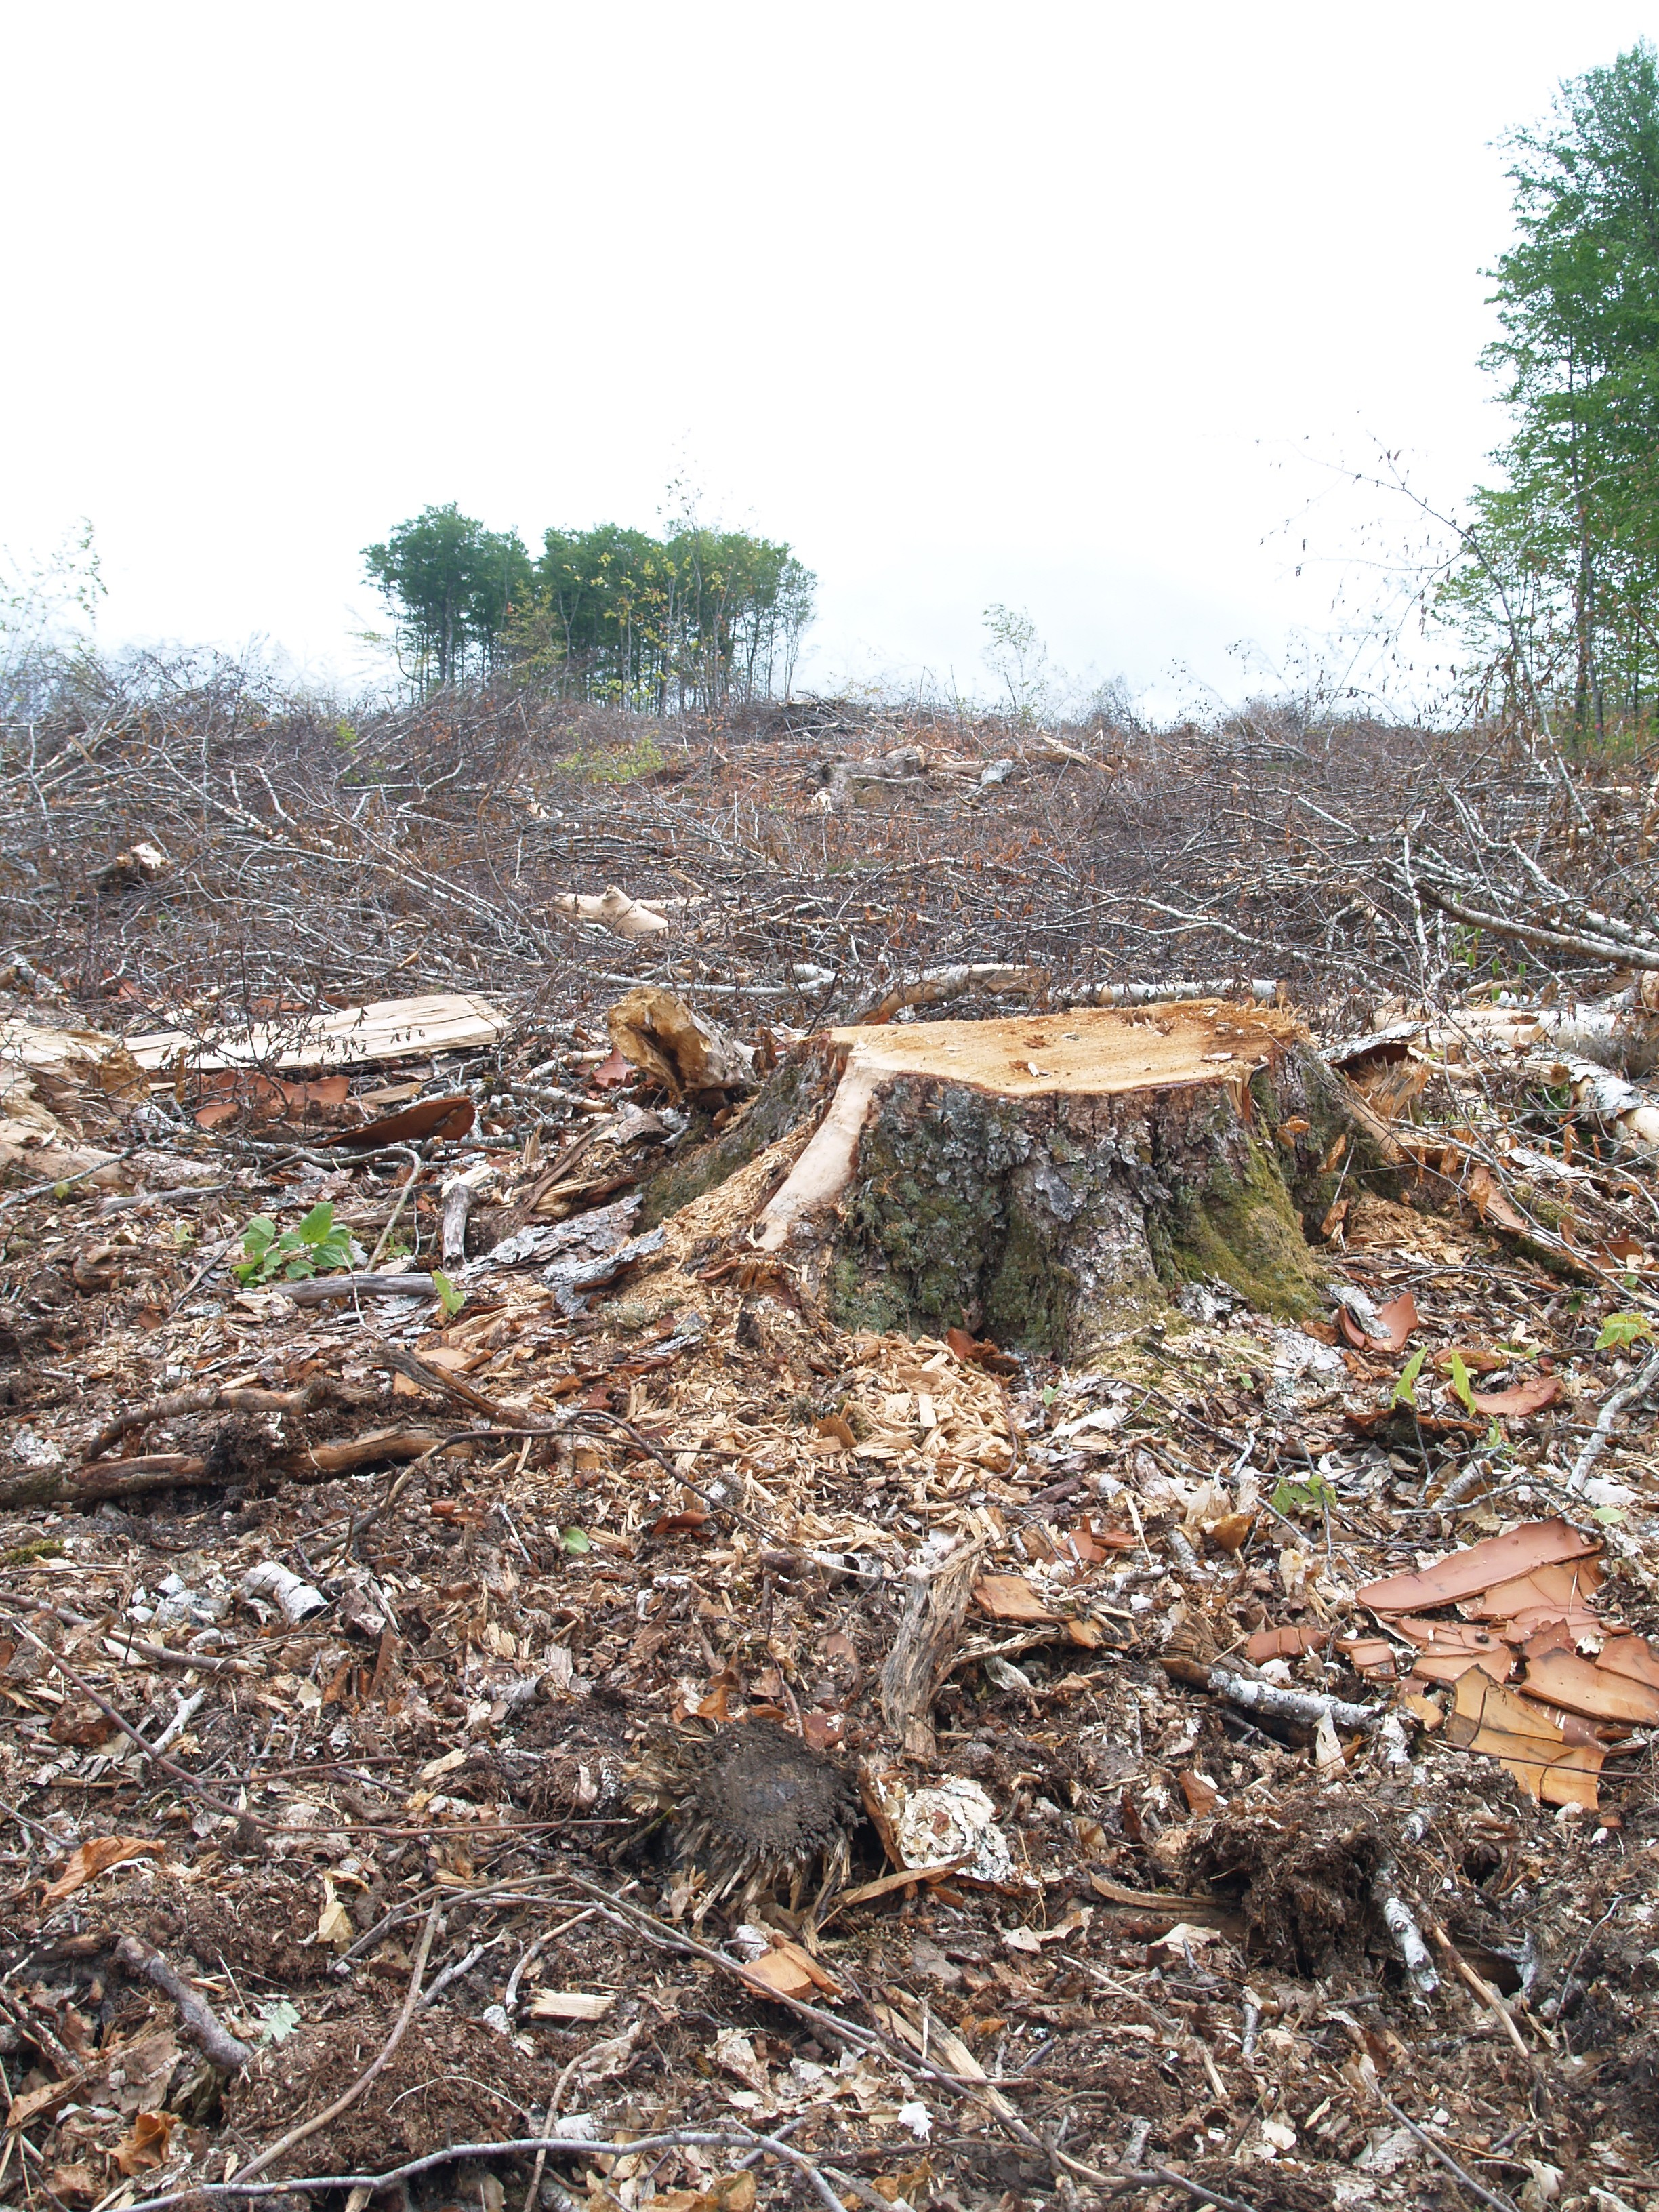 In June 2016, clear cutting began atop one slope in Wentworth Valley on land belonging to Northern Pulp (purchased with a loan from the NS government). Photo by Joan Baxter